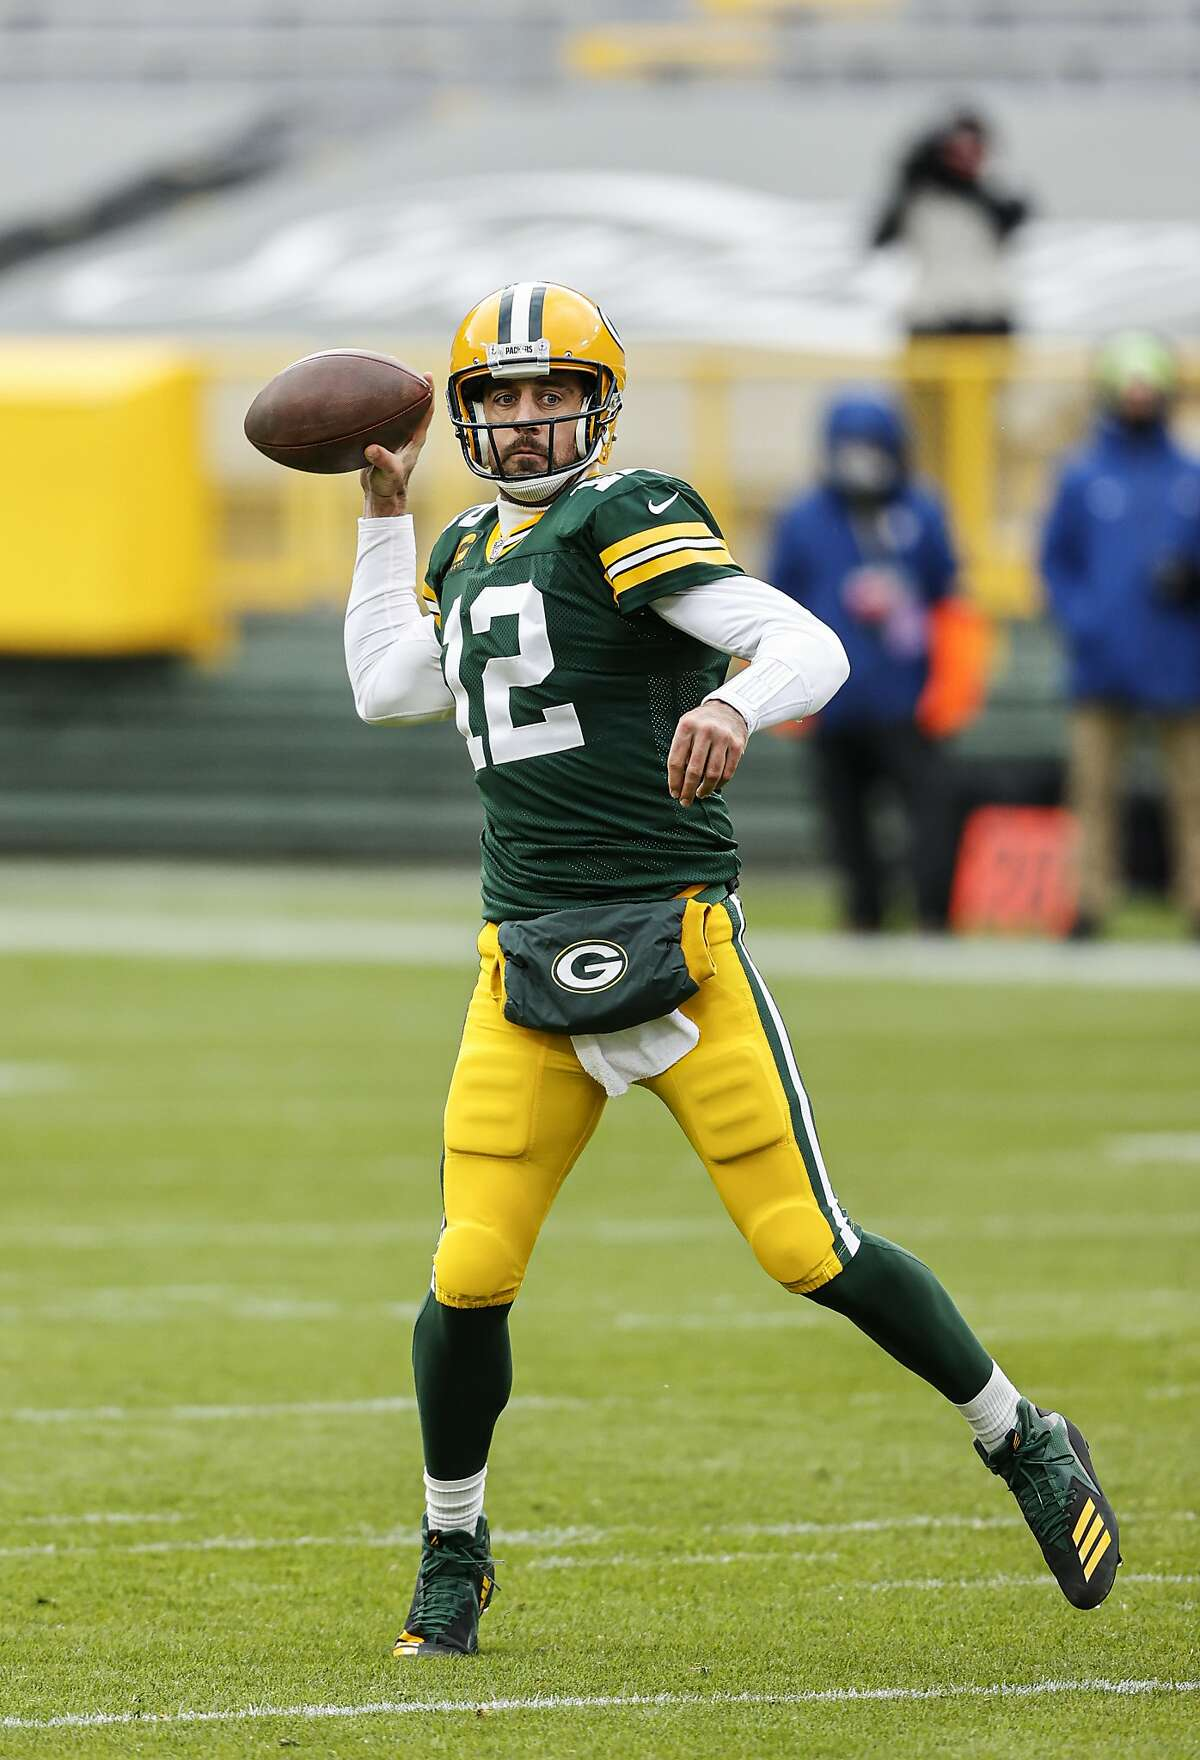 Cal alum Aaron Rodgers leads the Packers against the 49ers at Levi's Stadium at 5:20 p.m. Thursday (Channels 2, 40, NFL Network/104.5, 680, 107.7).